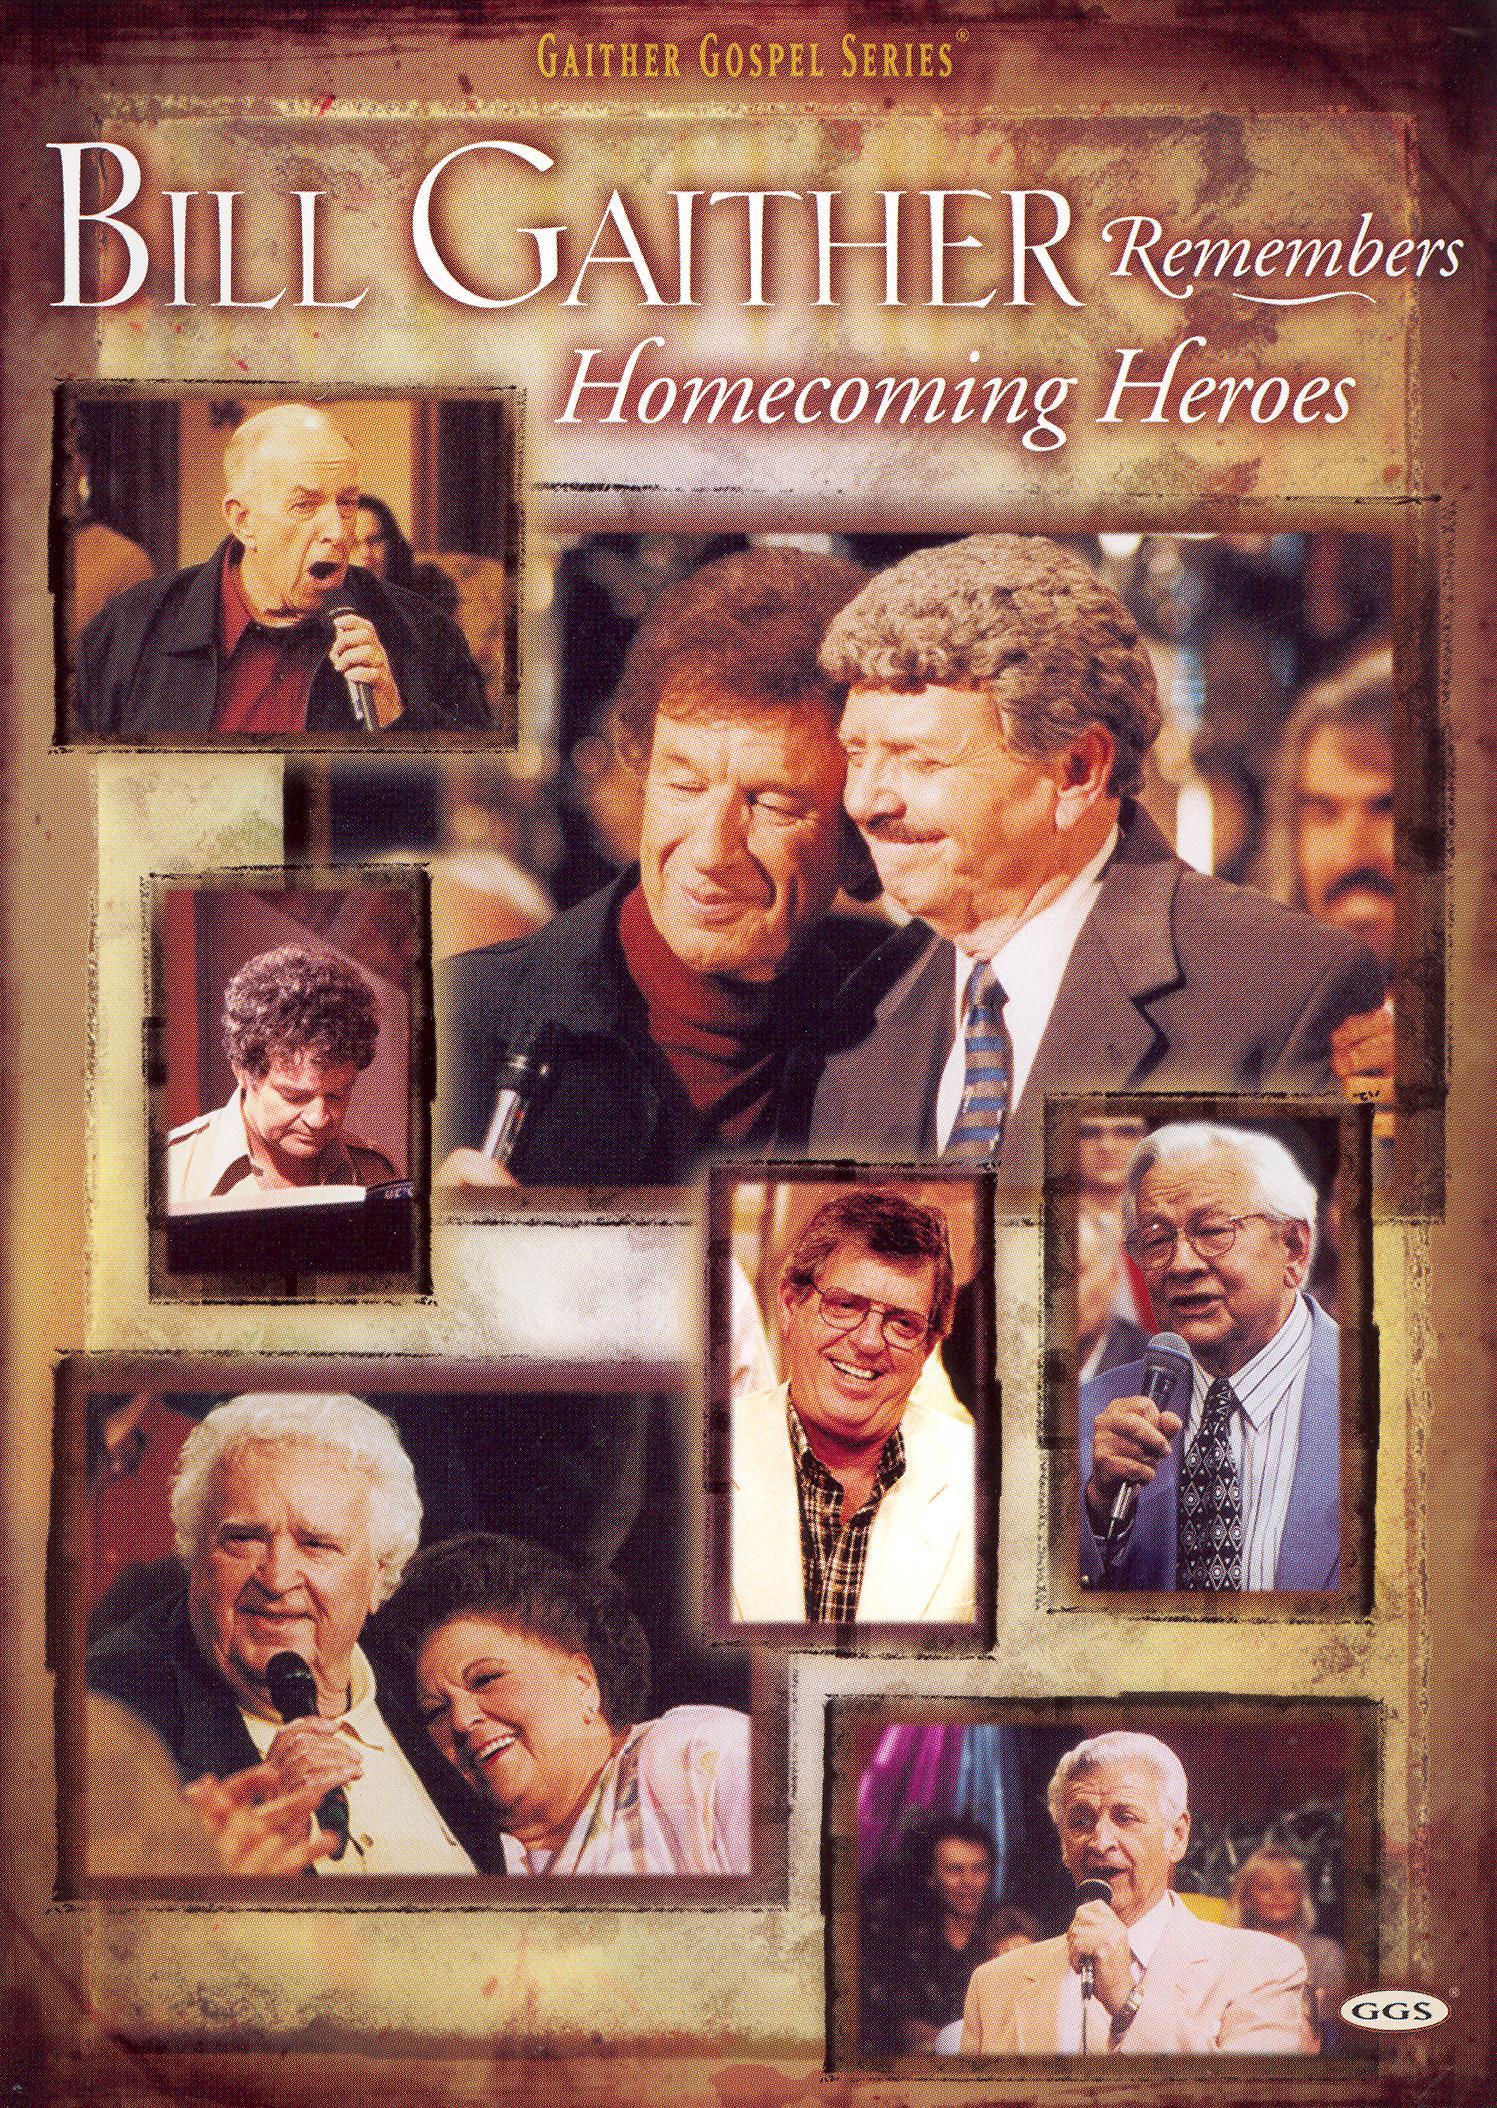 Bill and Gloria Gaither and Their Homecoming Friends: Bill Gaither Remembers Homecoming Heroes